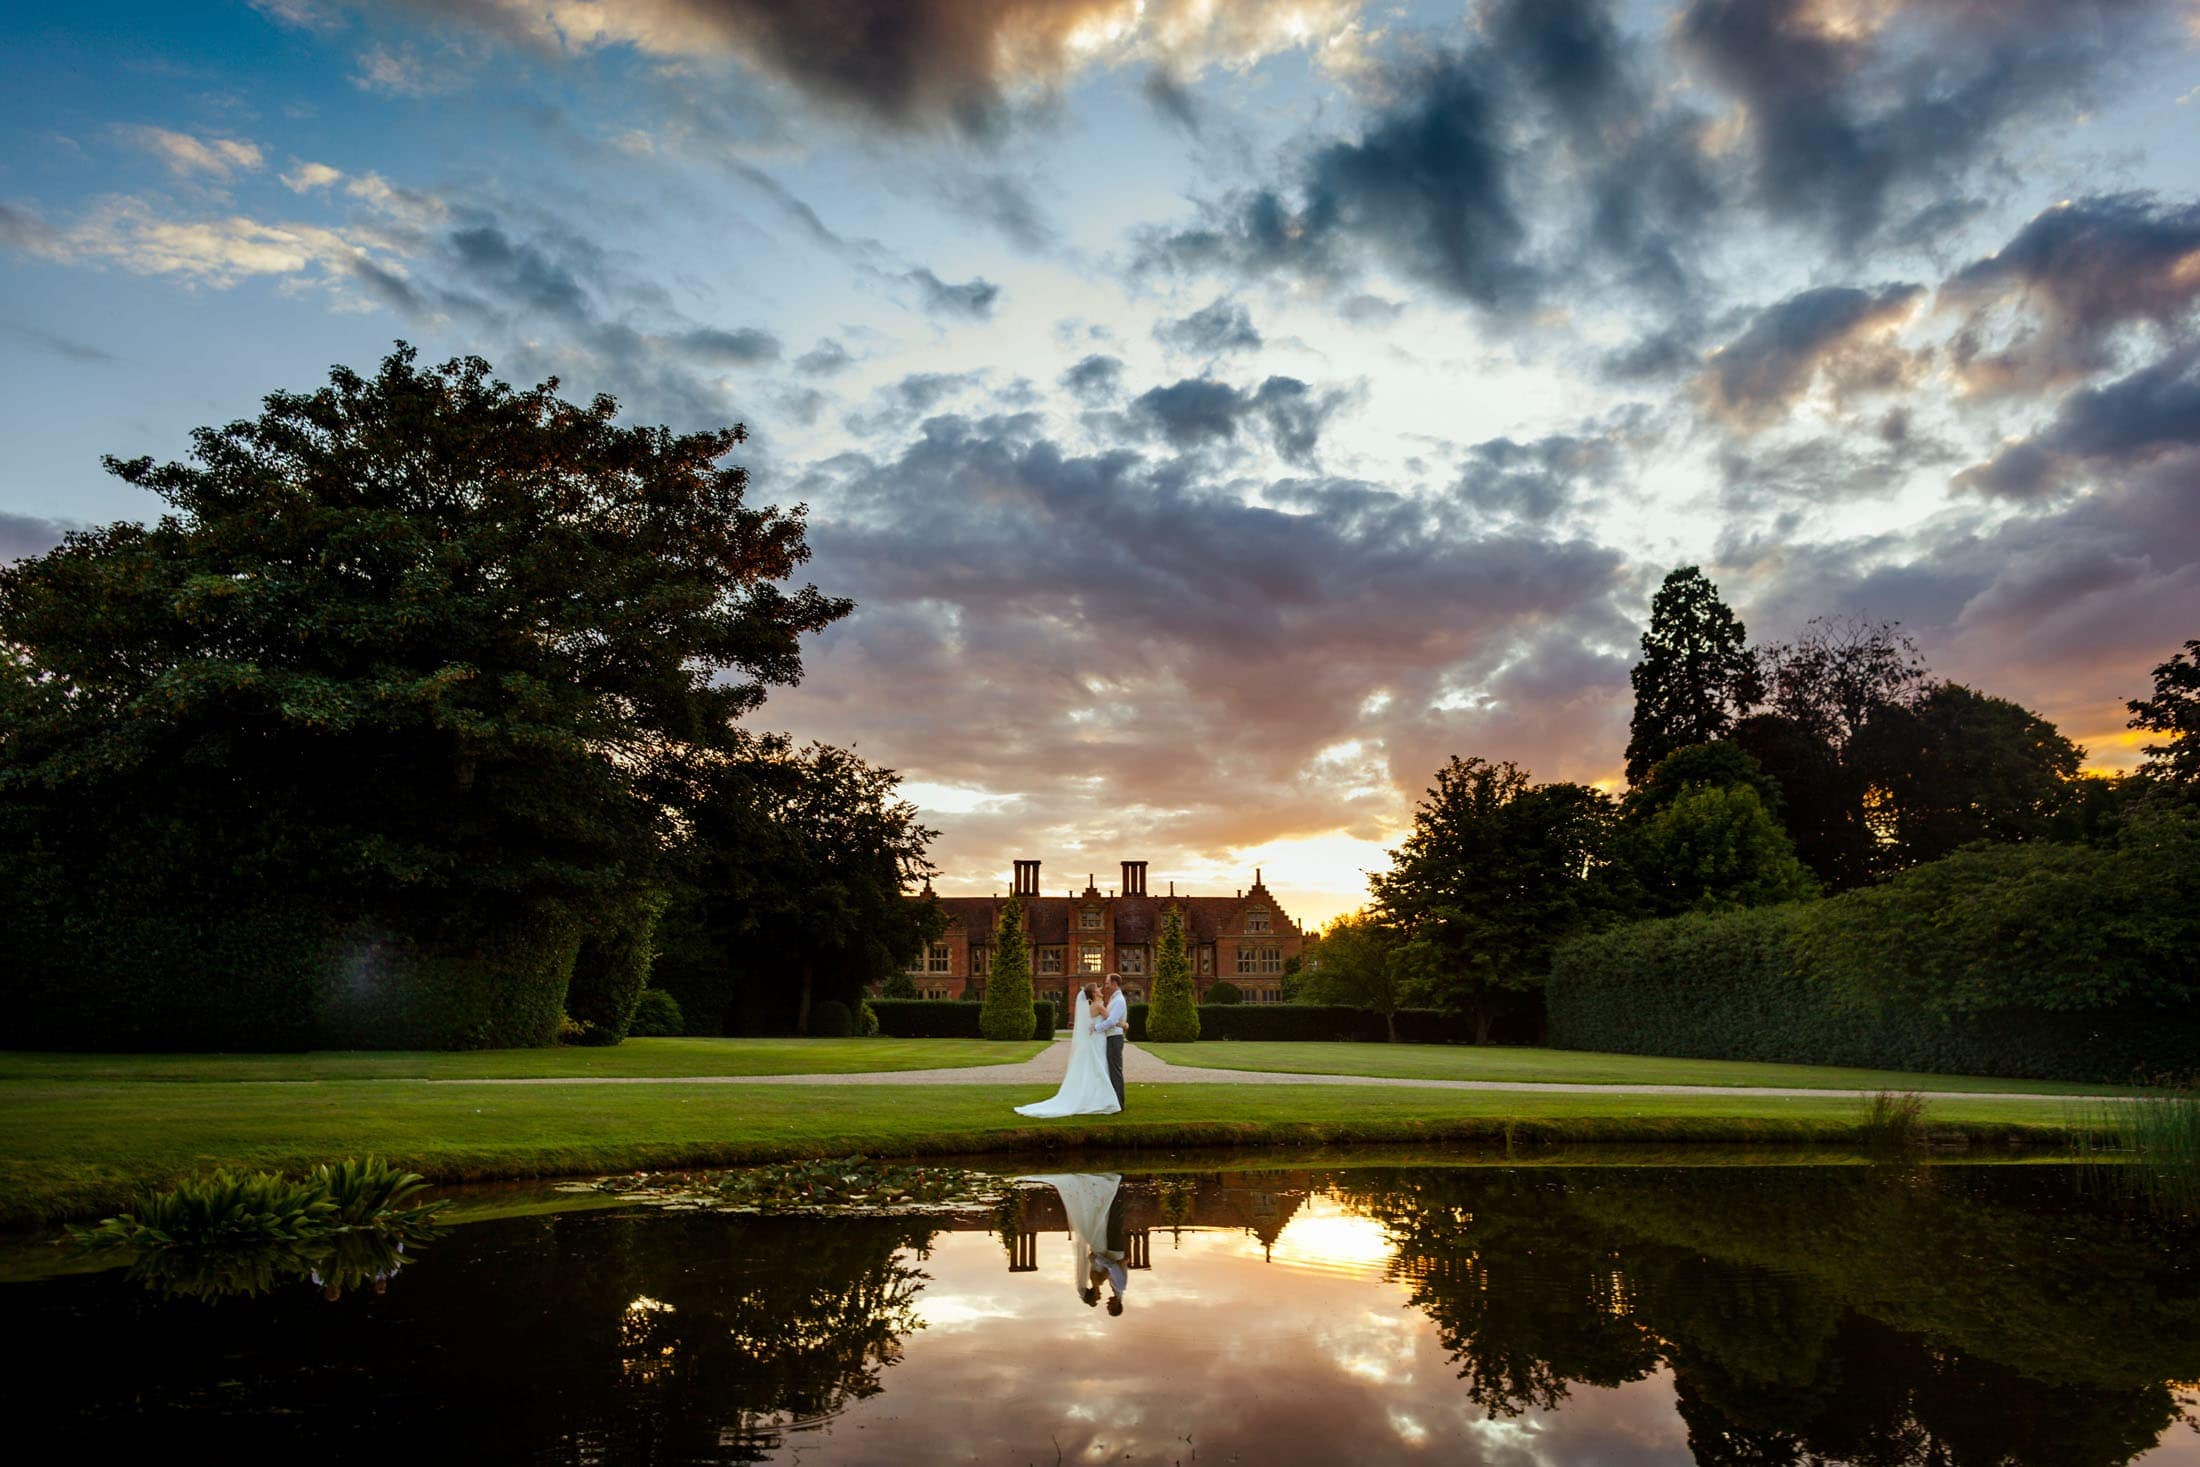 Haughley Park Barn wedding photography of Lucy and Paul